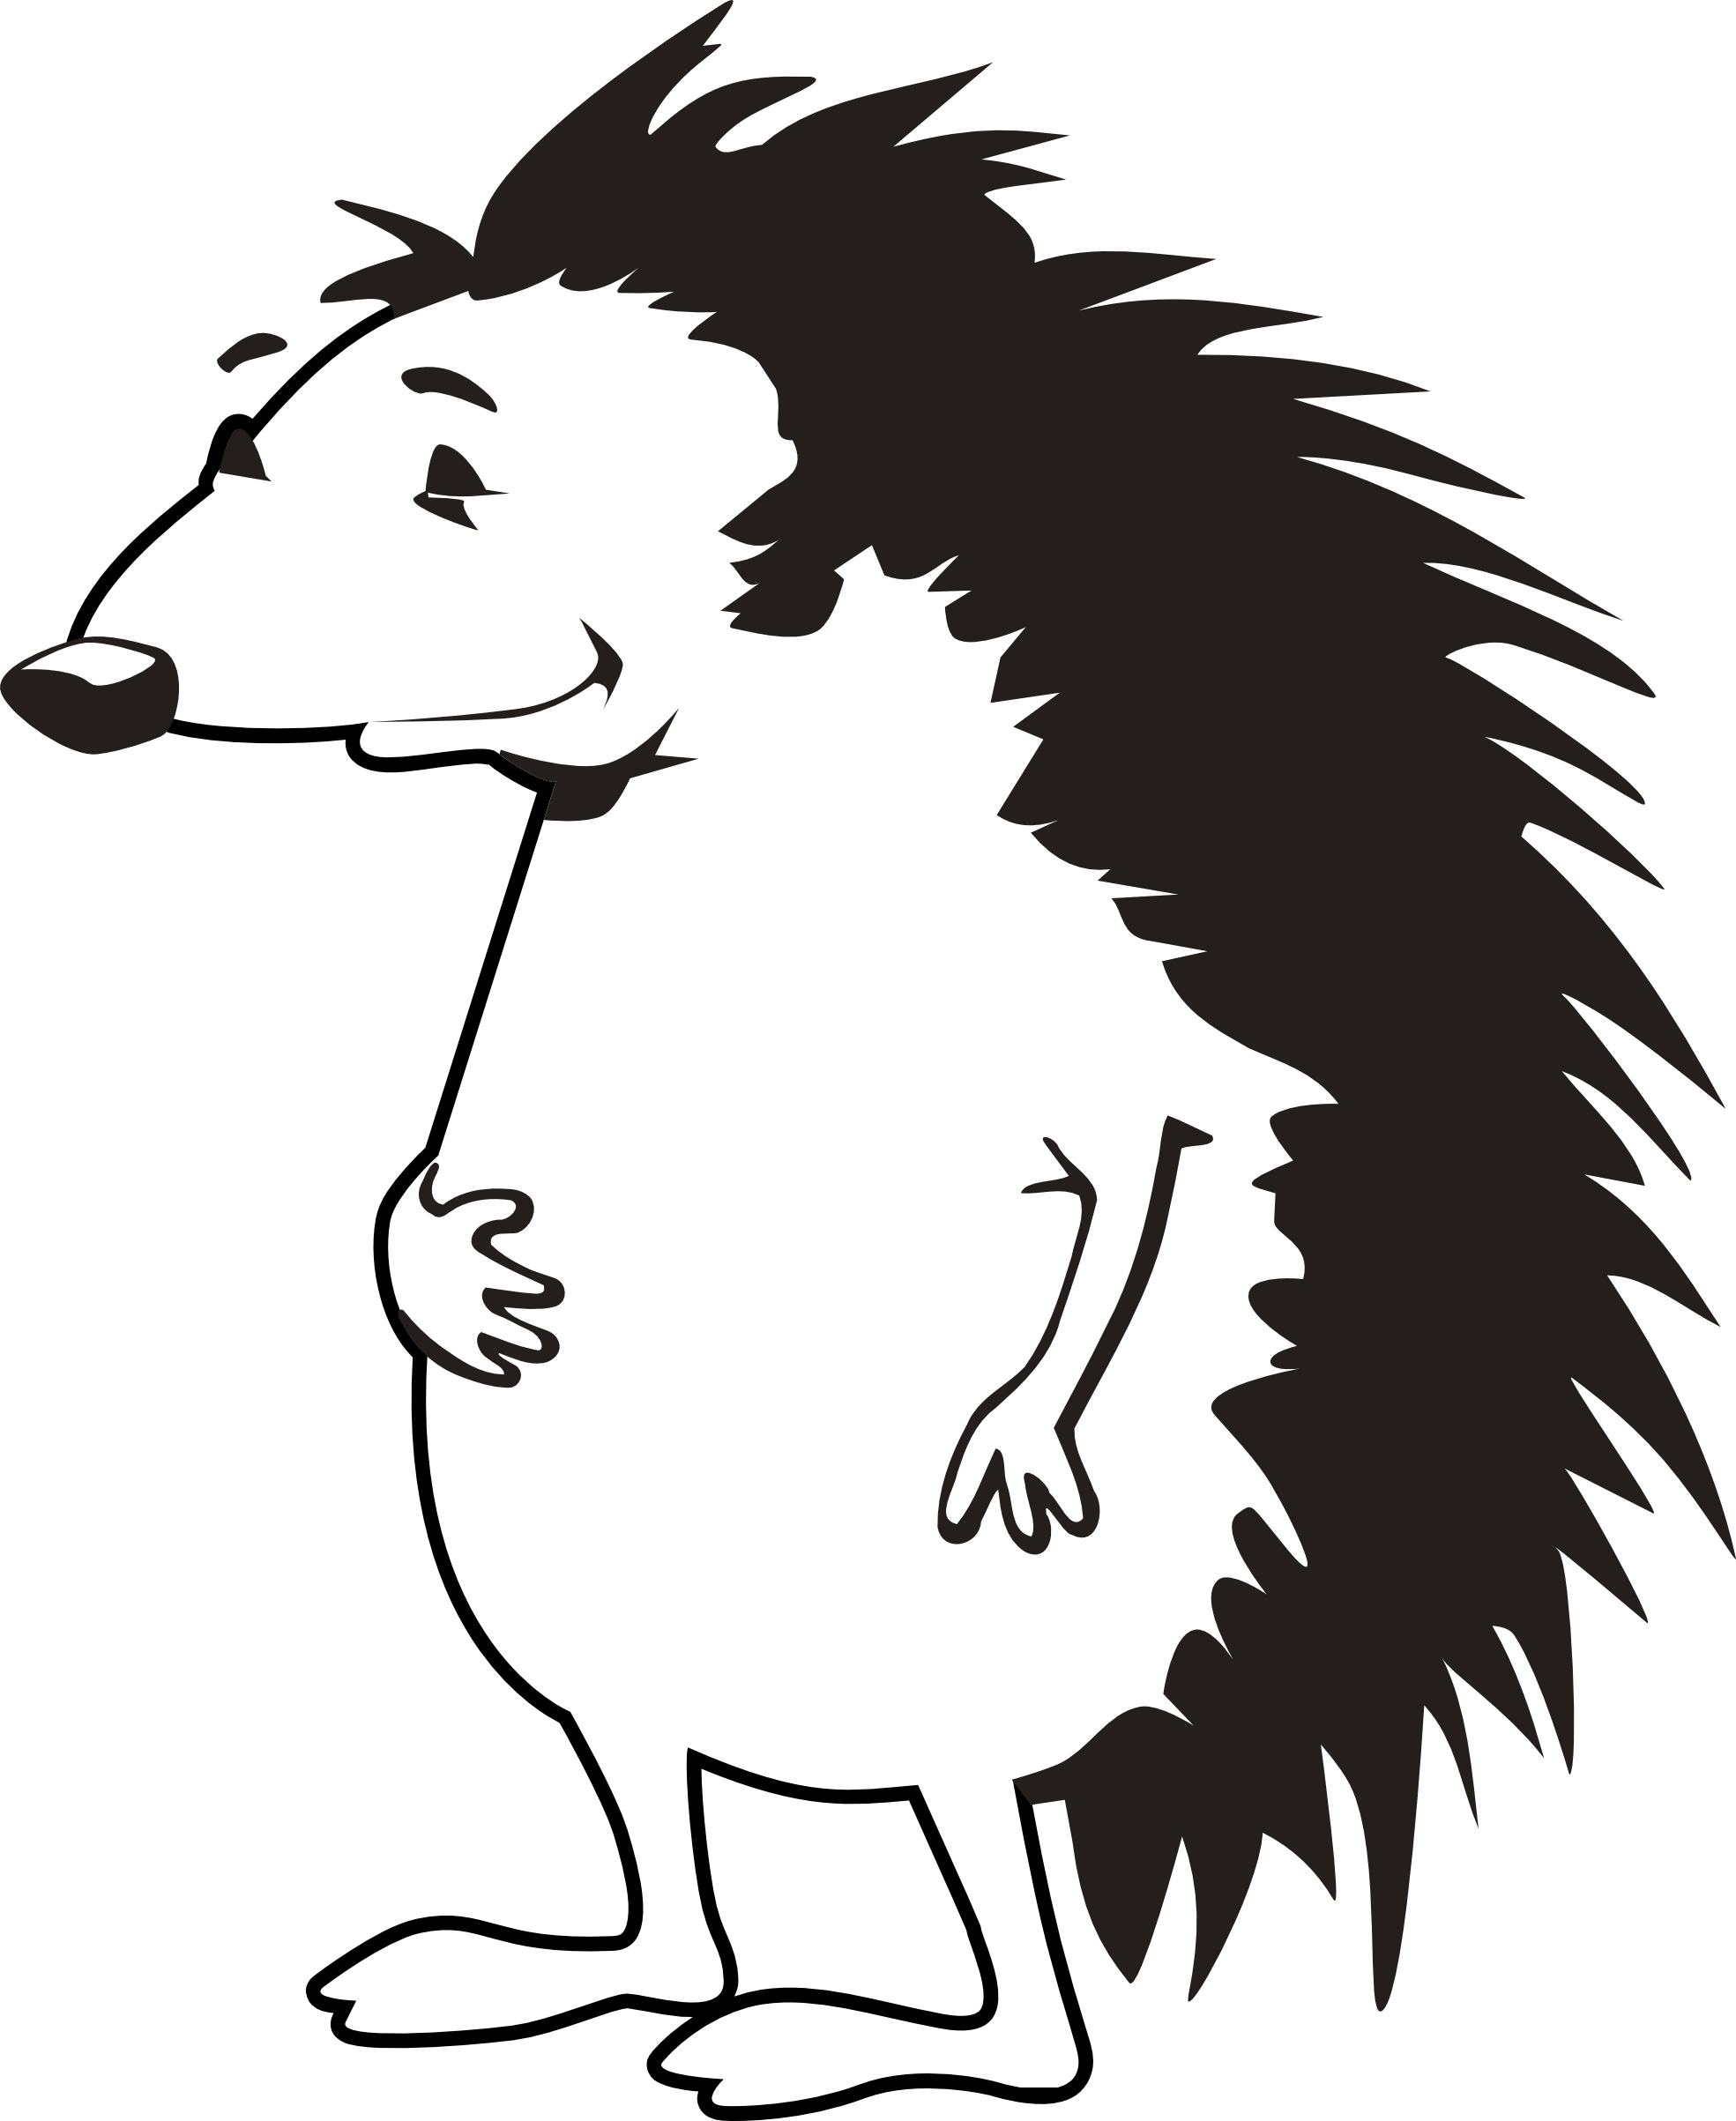 Hedgehog clipart animated. Porcupine clip art free